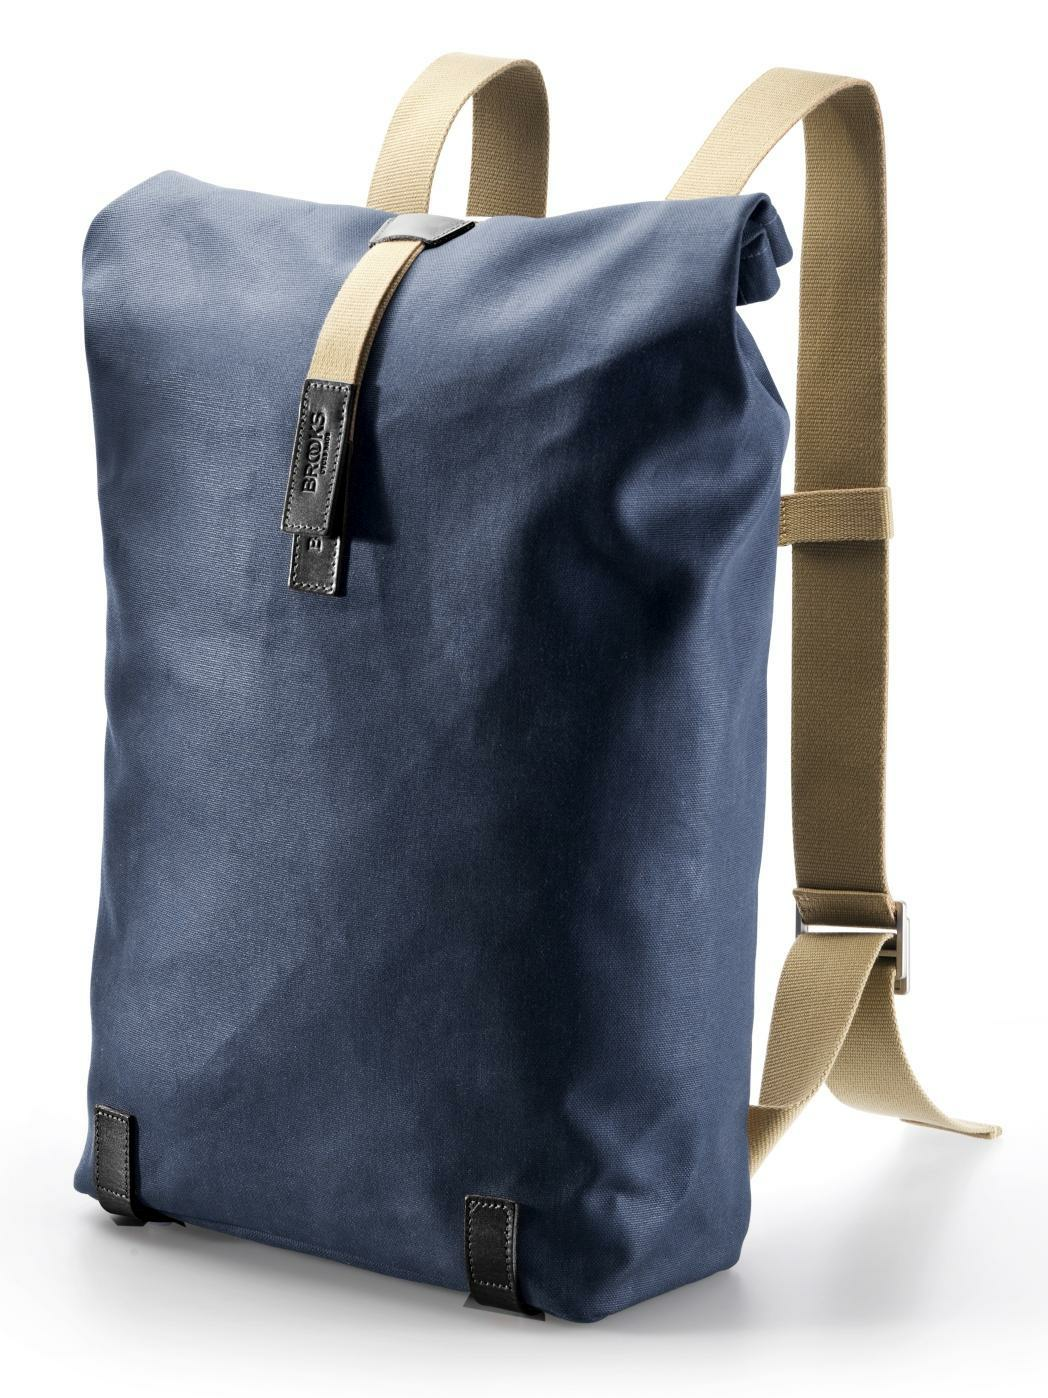 Brooks Pickwick Cotton Canvas Rucksack 26 L